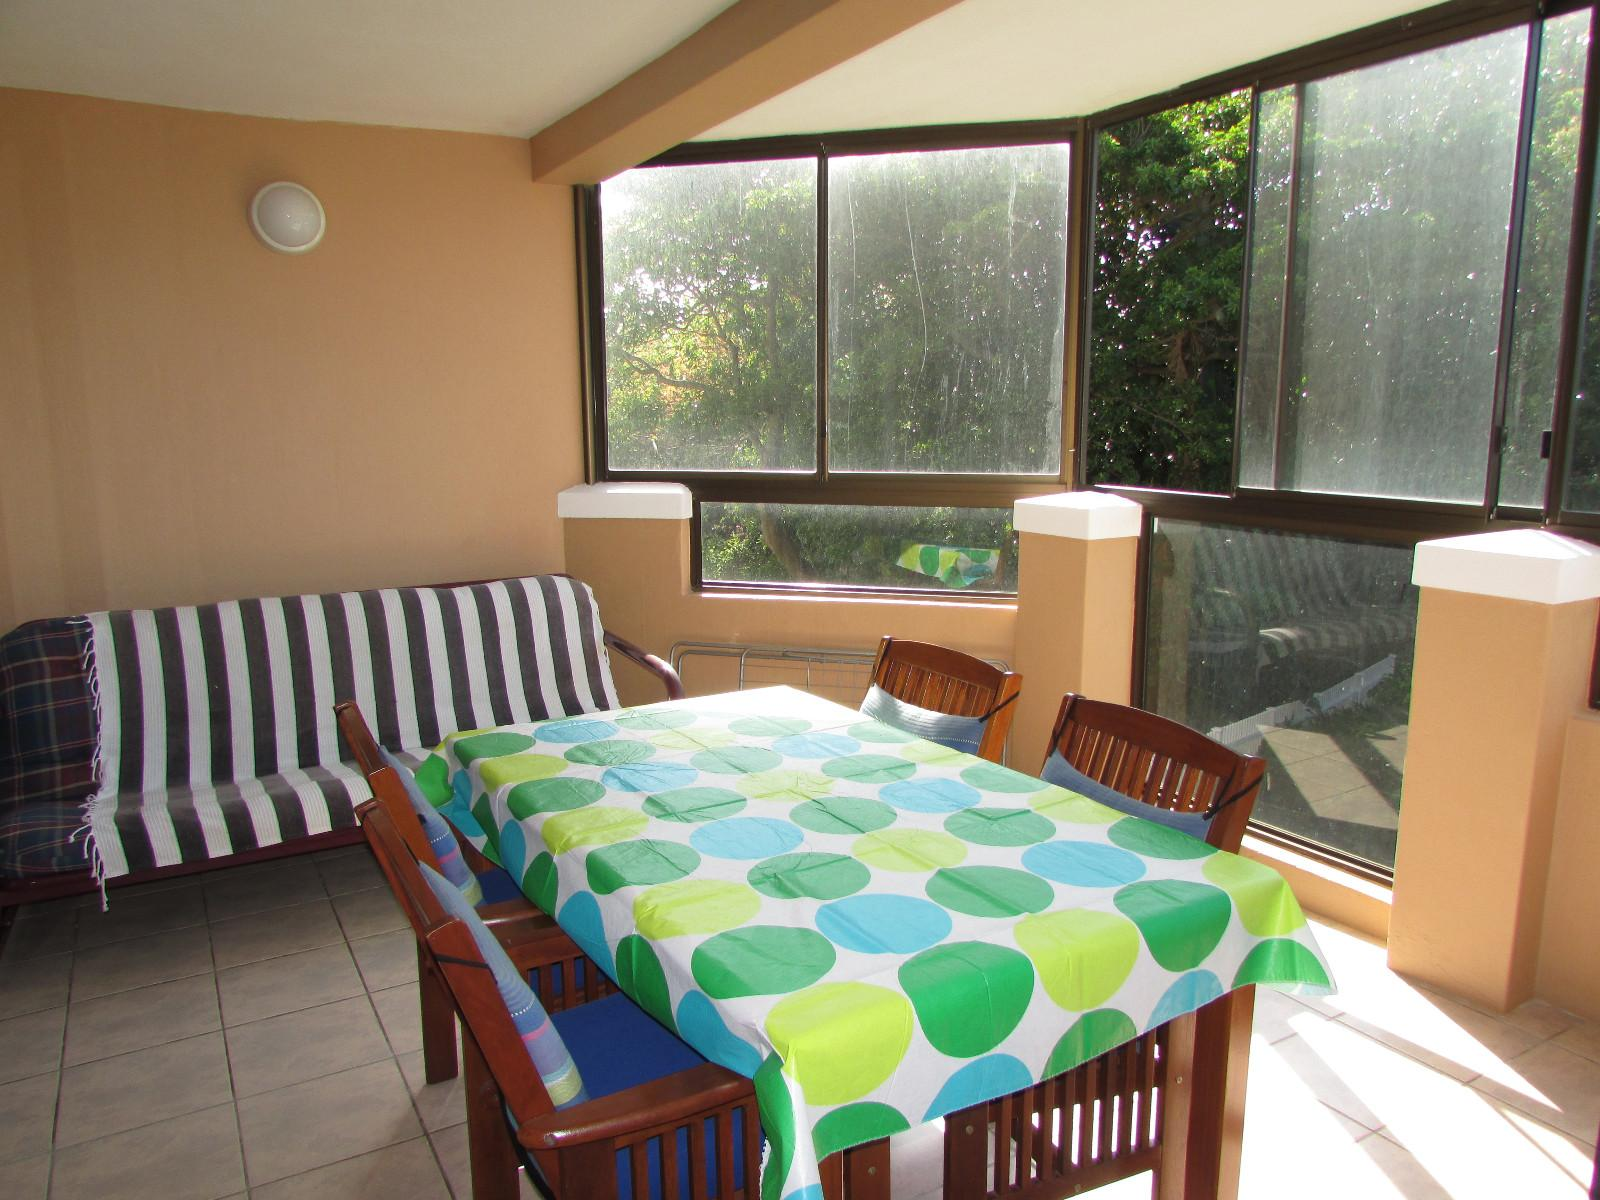 Shelly Beach property for sale. Ref No: 13243098. Picture no 9